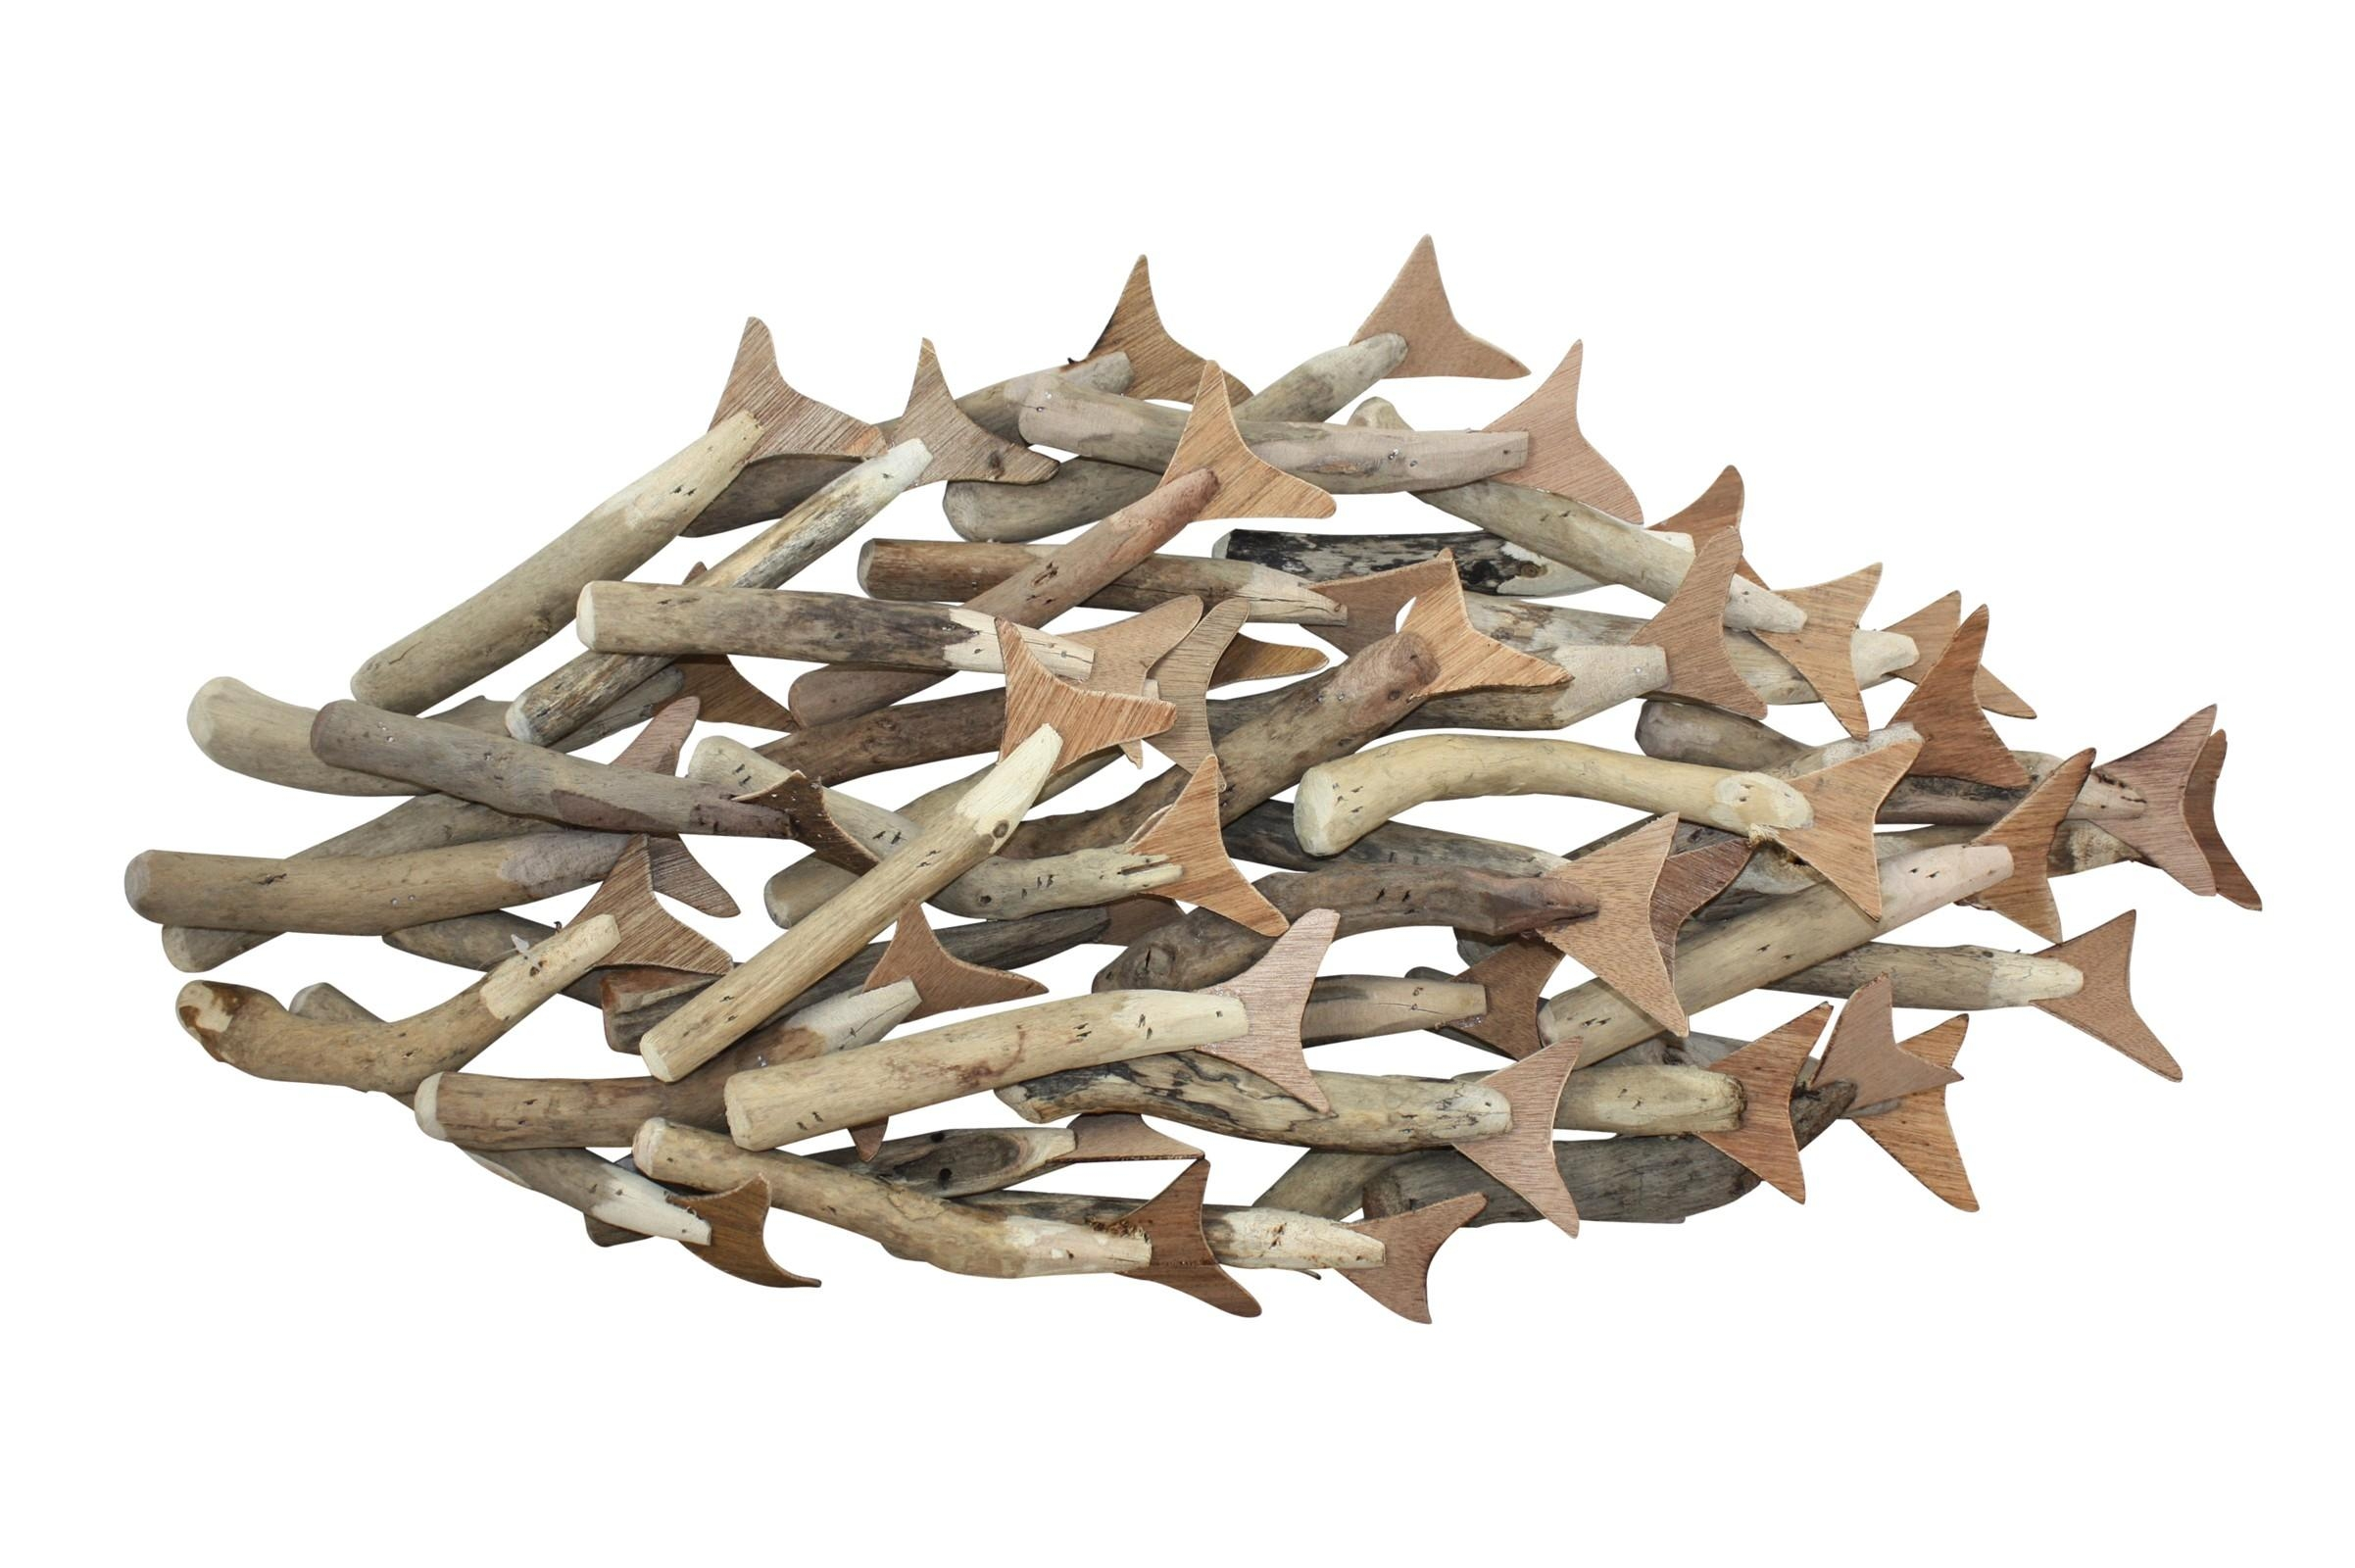 20 collection of stainless steel fish wall art wall art for Fish wall decor